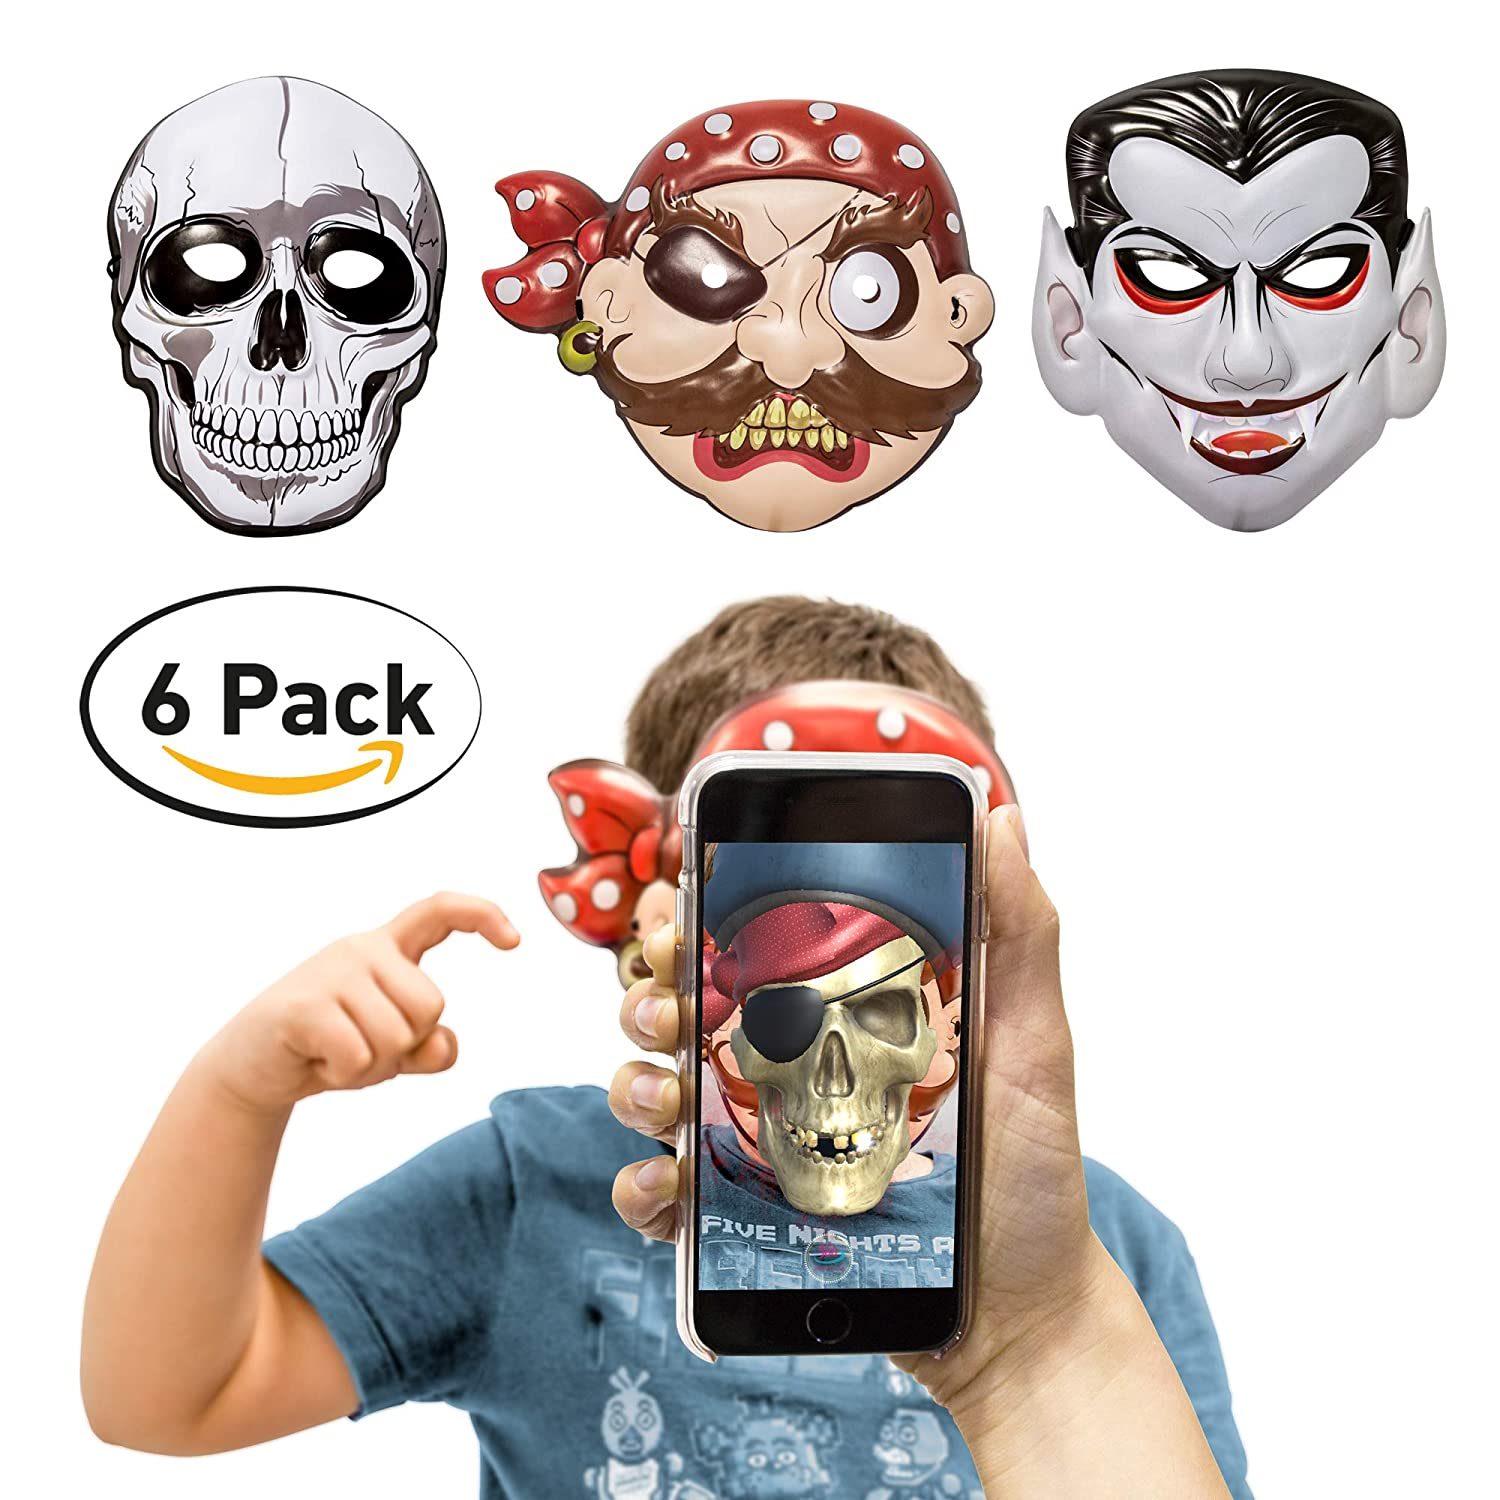 360 Party Lab Kids Boy Augmented Reality 6 Pack 2 Pirate 2 Vampire 2 Skull